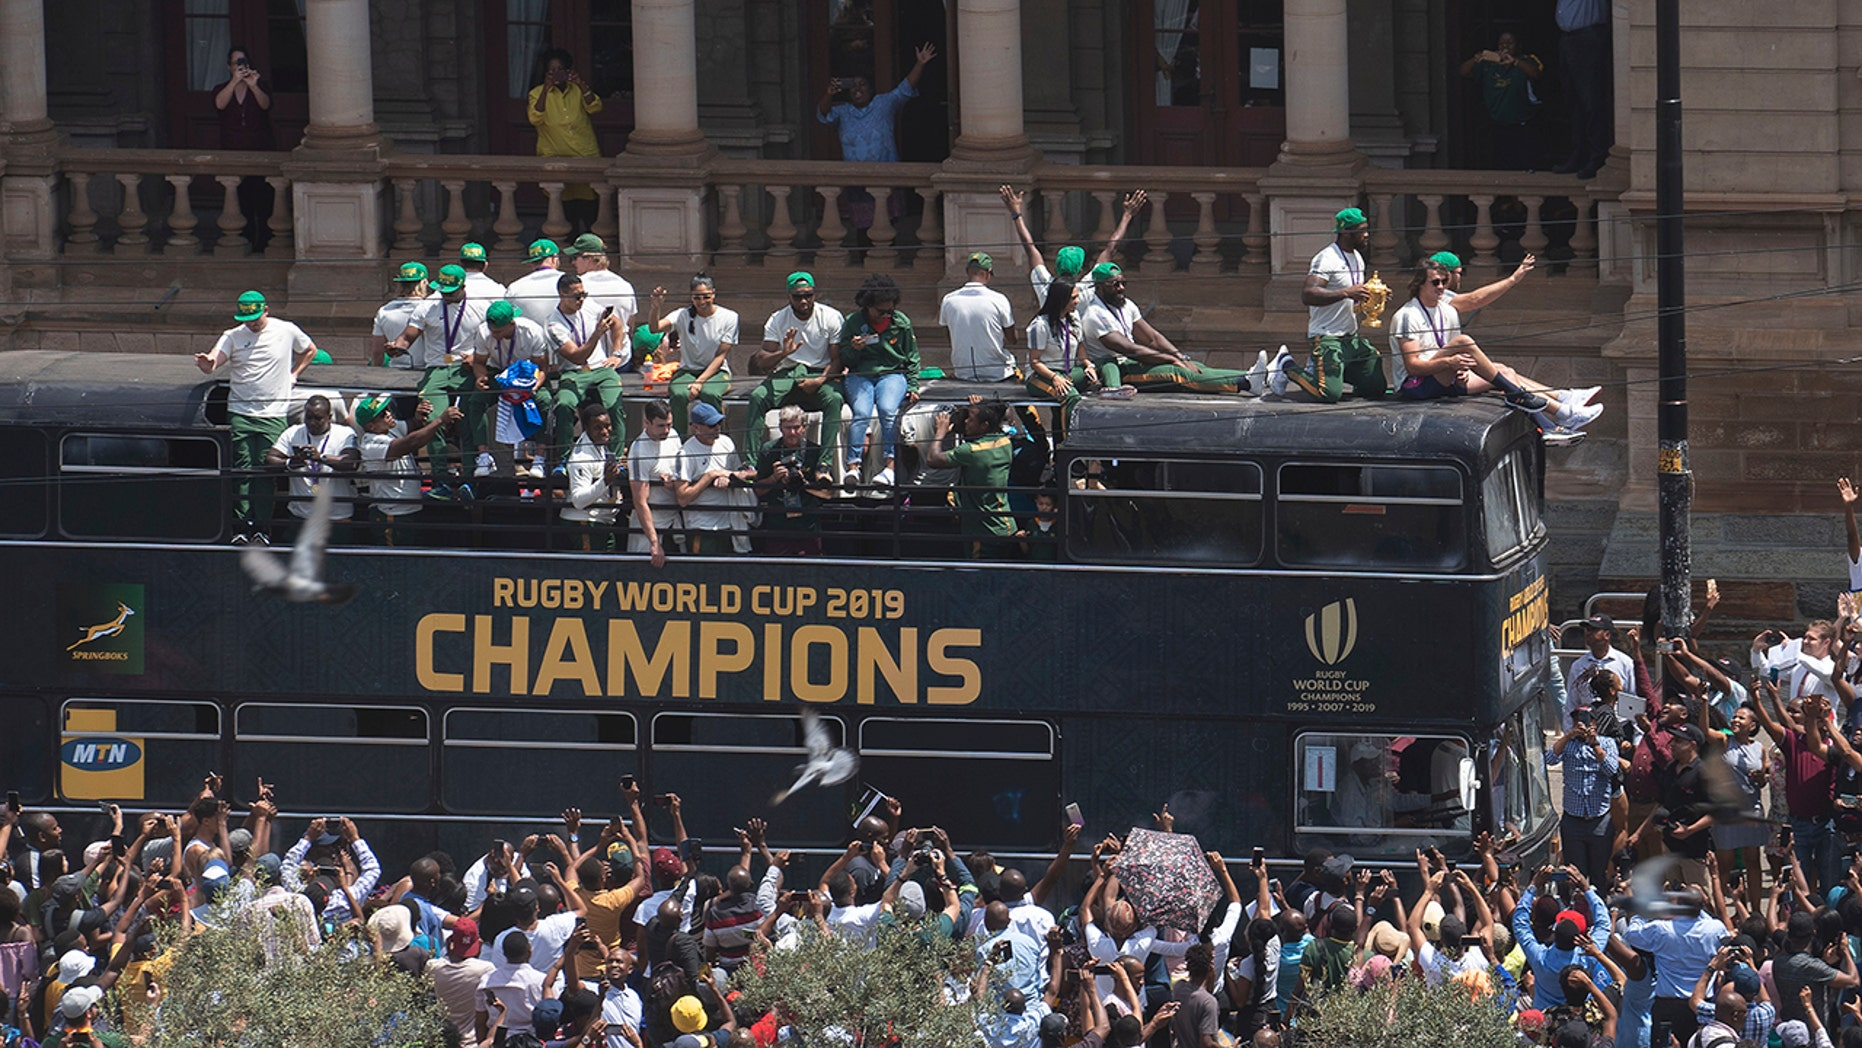 Rugby fans cheer as the bus of the South African Springbok rugby team passes, during a victory parade in Pretoria, South Africa, Thursday, Nov. 7, 2019. South Africa's Rugby World Cup-winning team have started a five-day victory tour where they will carry the trophy across the country. South Africa beat England in Saturday's final in Japan to clinch a third World Cup title. (AP Photo/Jerome Delay)